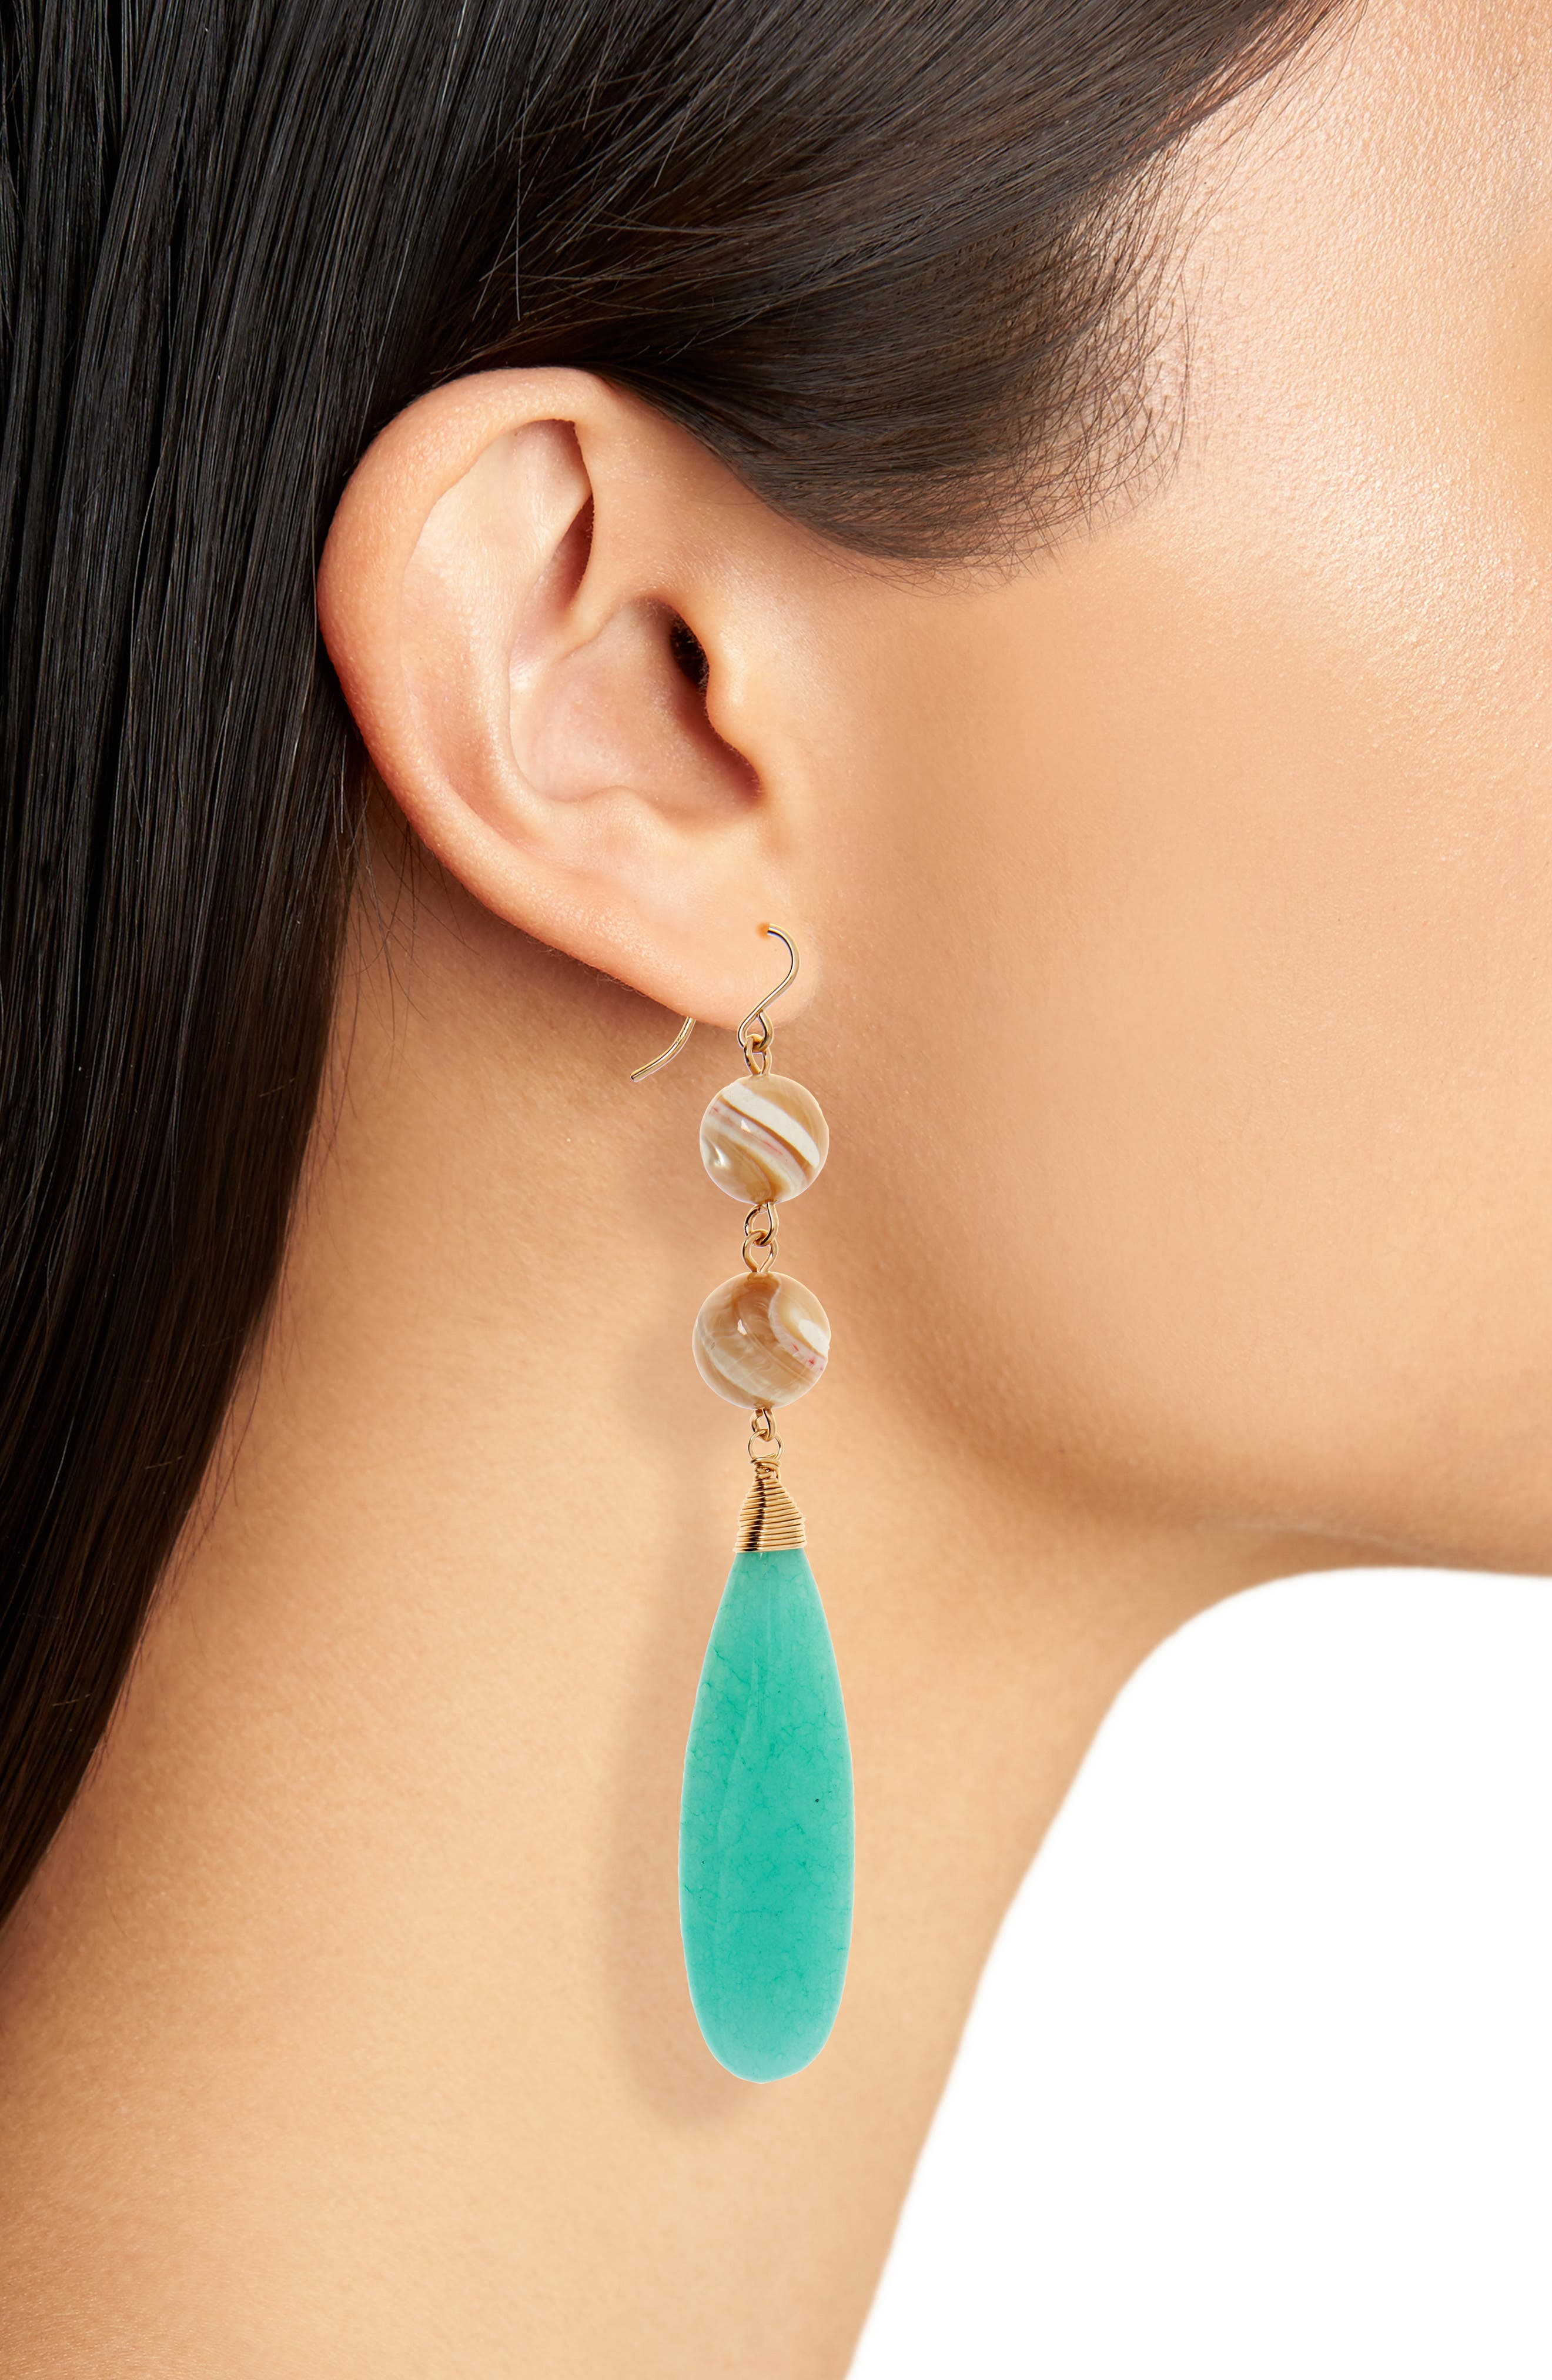 BECK JEWELS, Jade Shoulder Duster Earrings, Alternate thumbnail 2, color, JADE